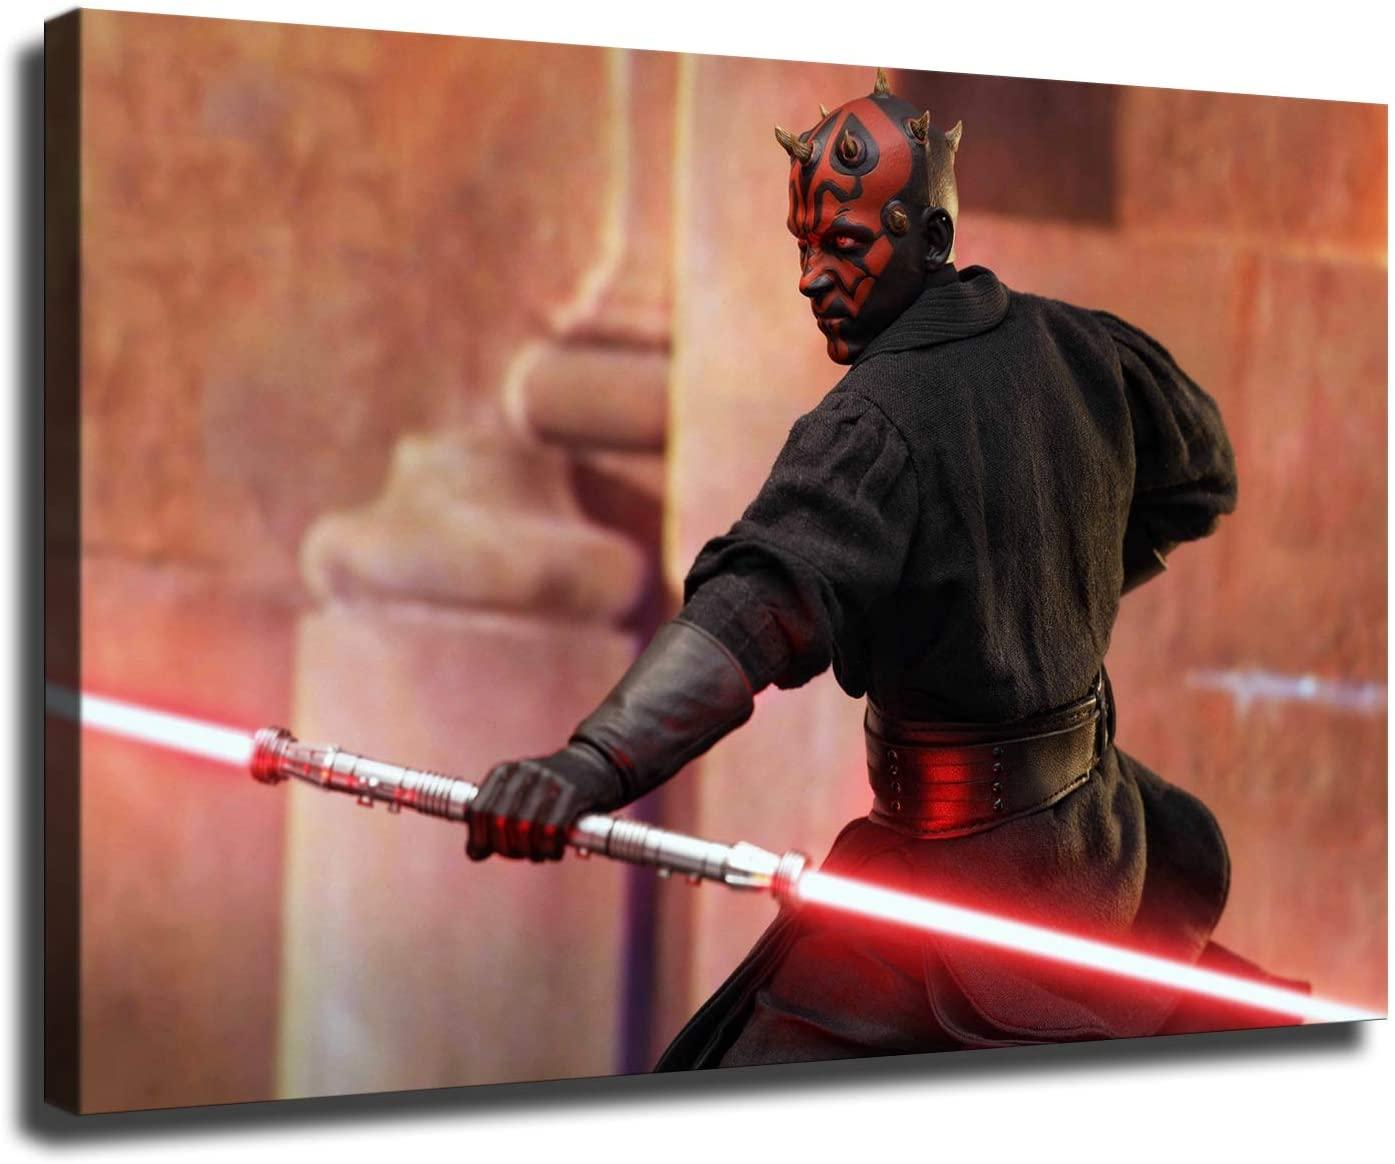 Star Wars canvas Poster Darth Maul aesthetic room wall decor art HD printing indoor aesthetic poster (12x18inch,No framed)